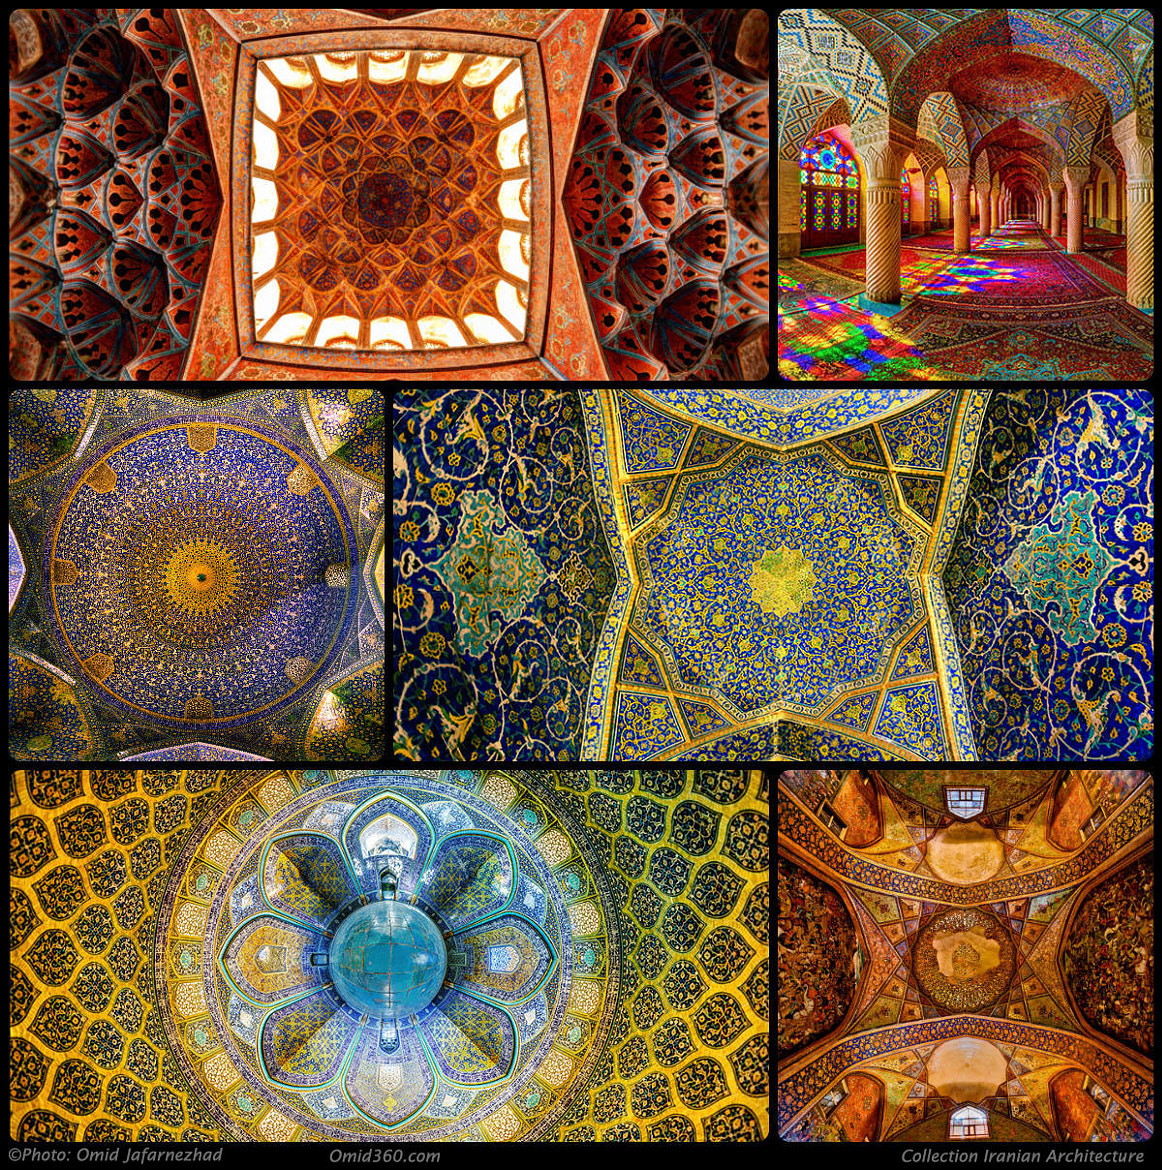 Photograph Collection Iranian Architecture  by Omid Jafarnezhad on 500px